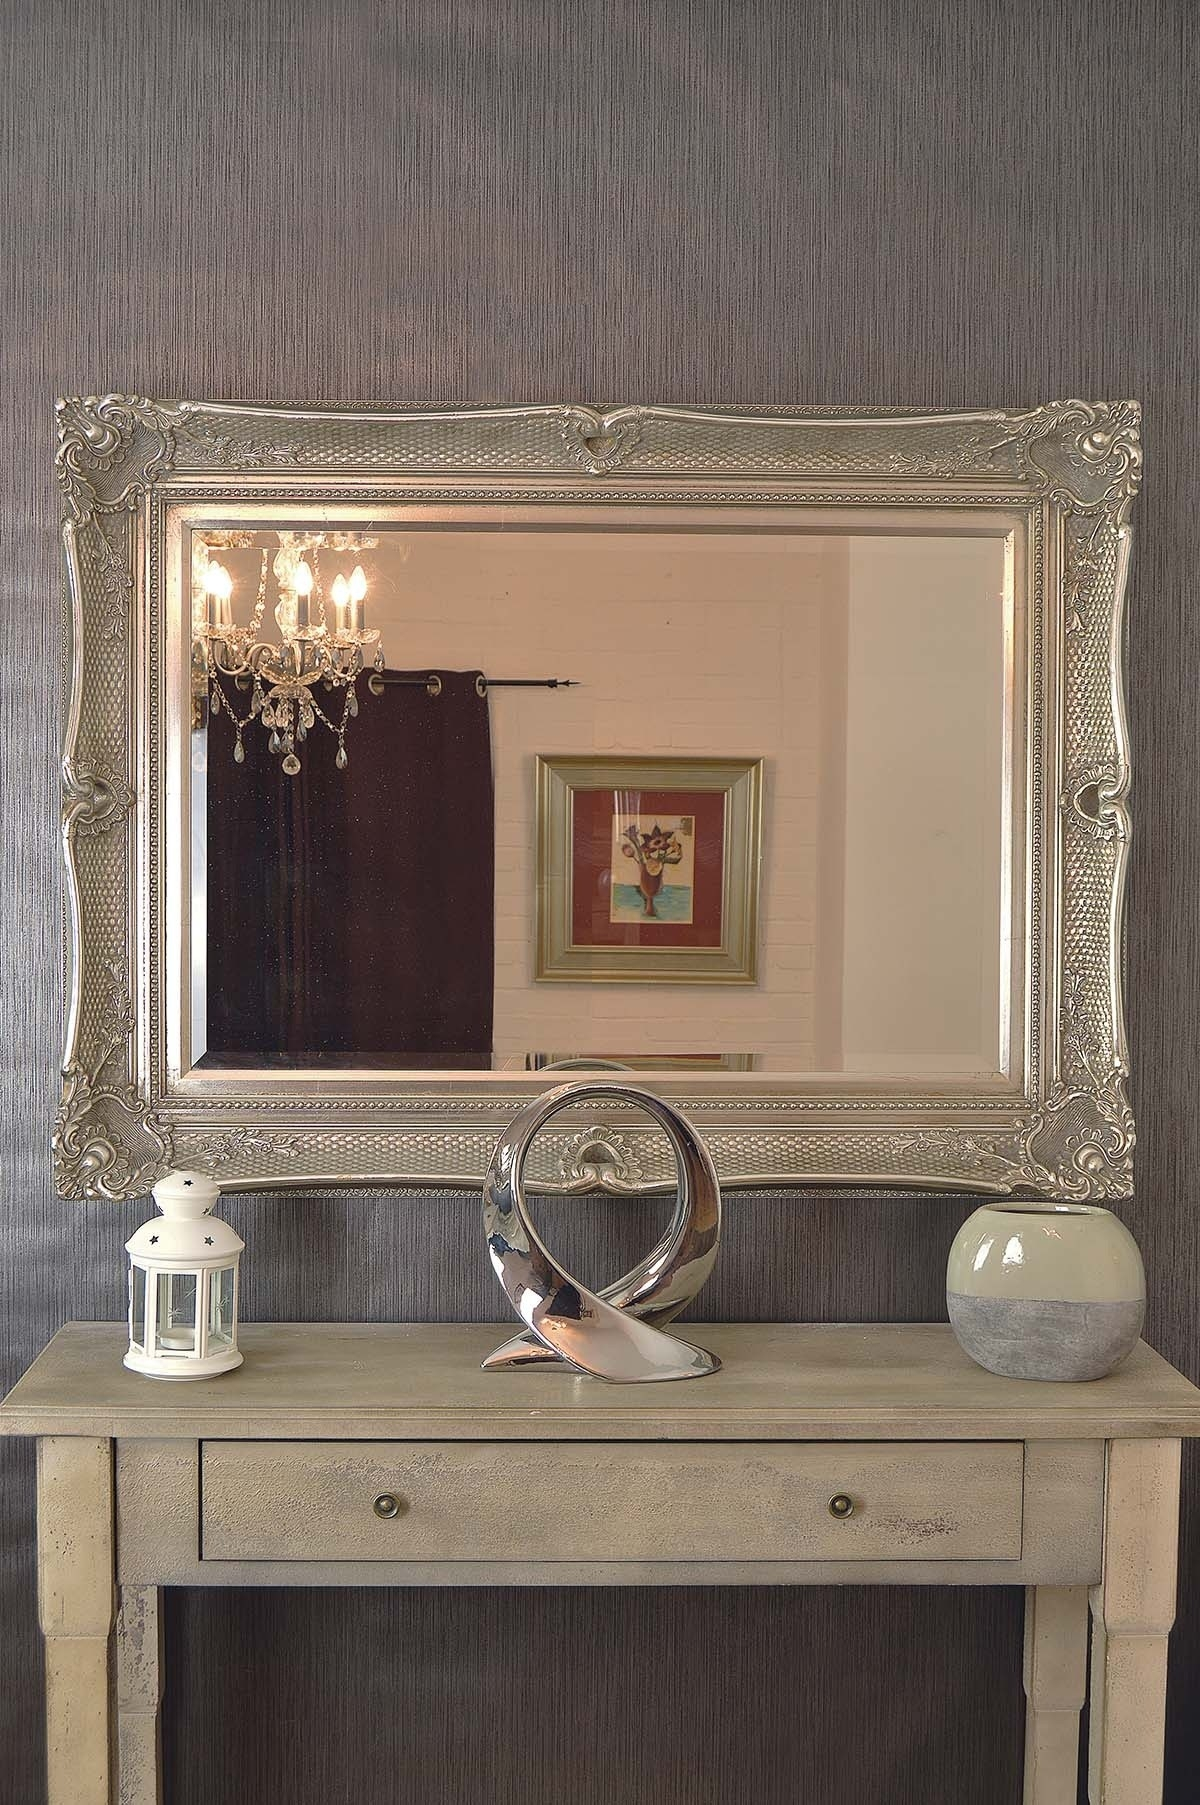 Large Antique Style Silver Ornate Wood Wall Mirror 4ftx3ft For Large Antique Silver Mirror (Image 9 of 15)